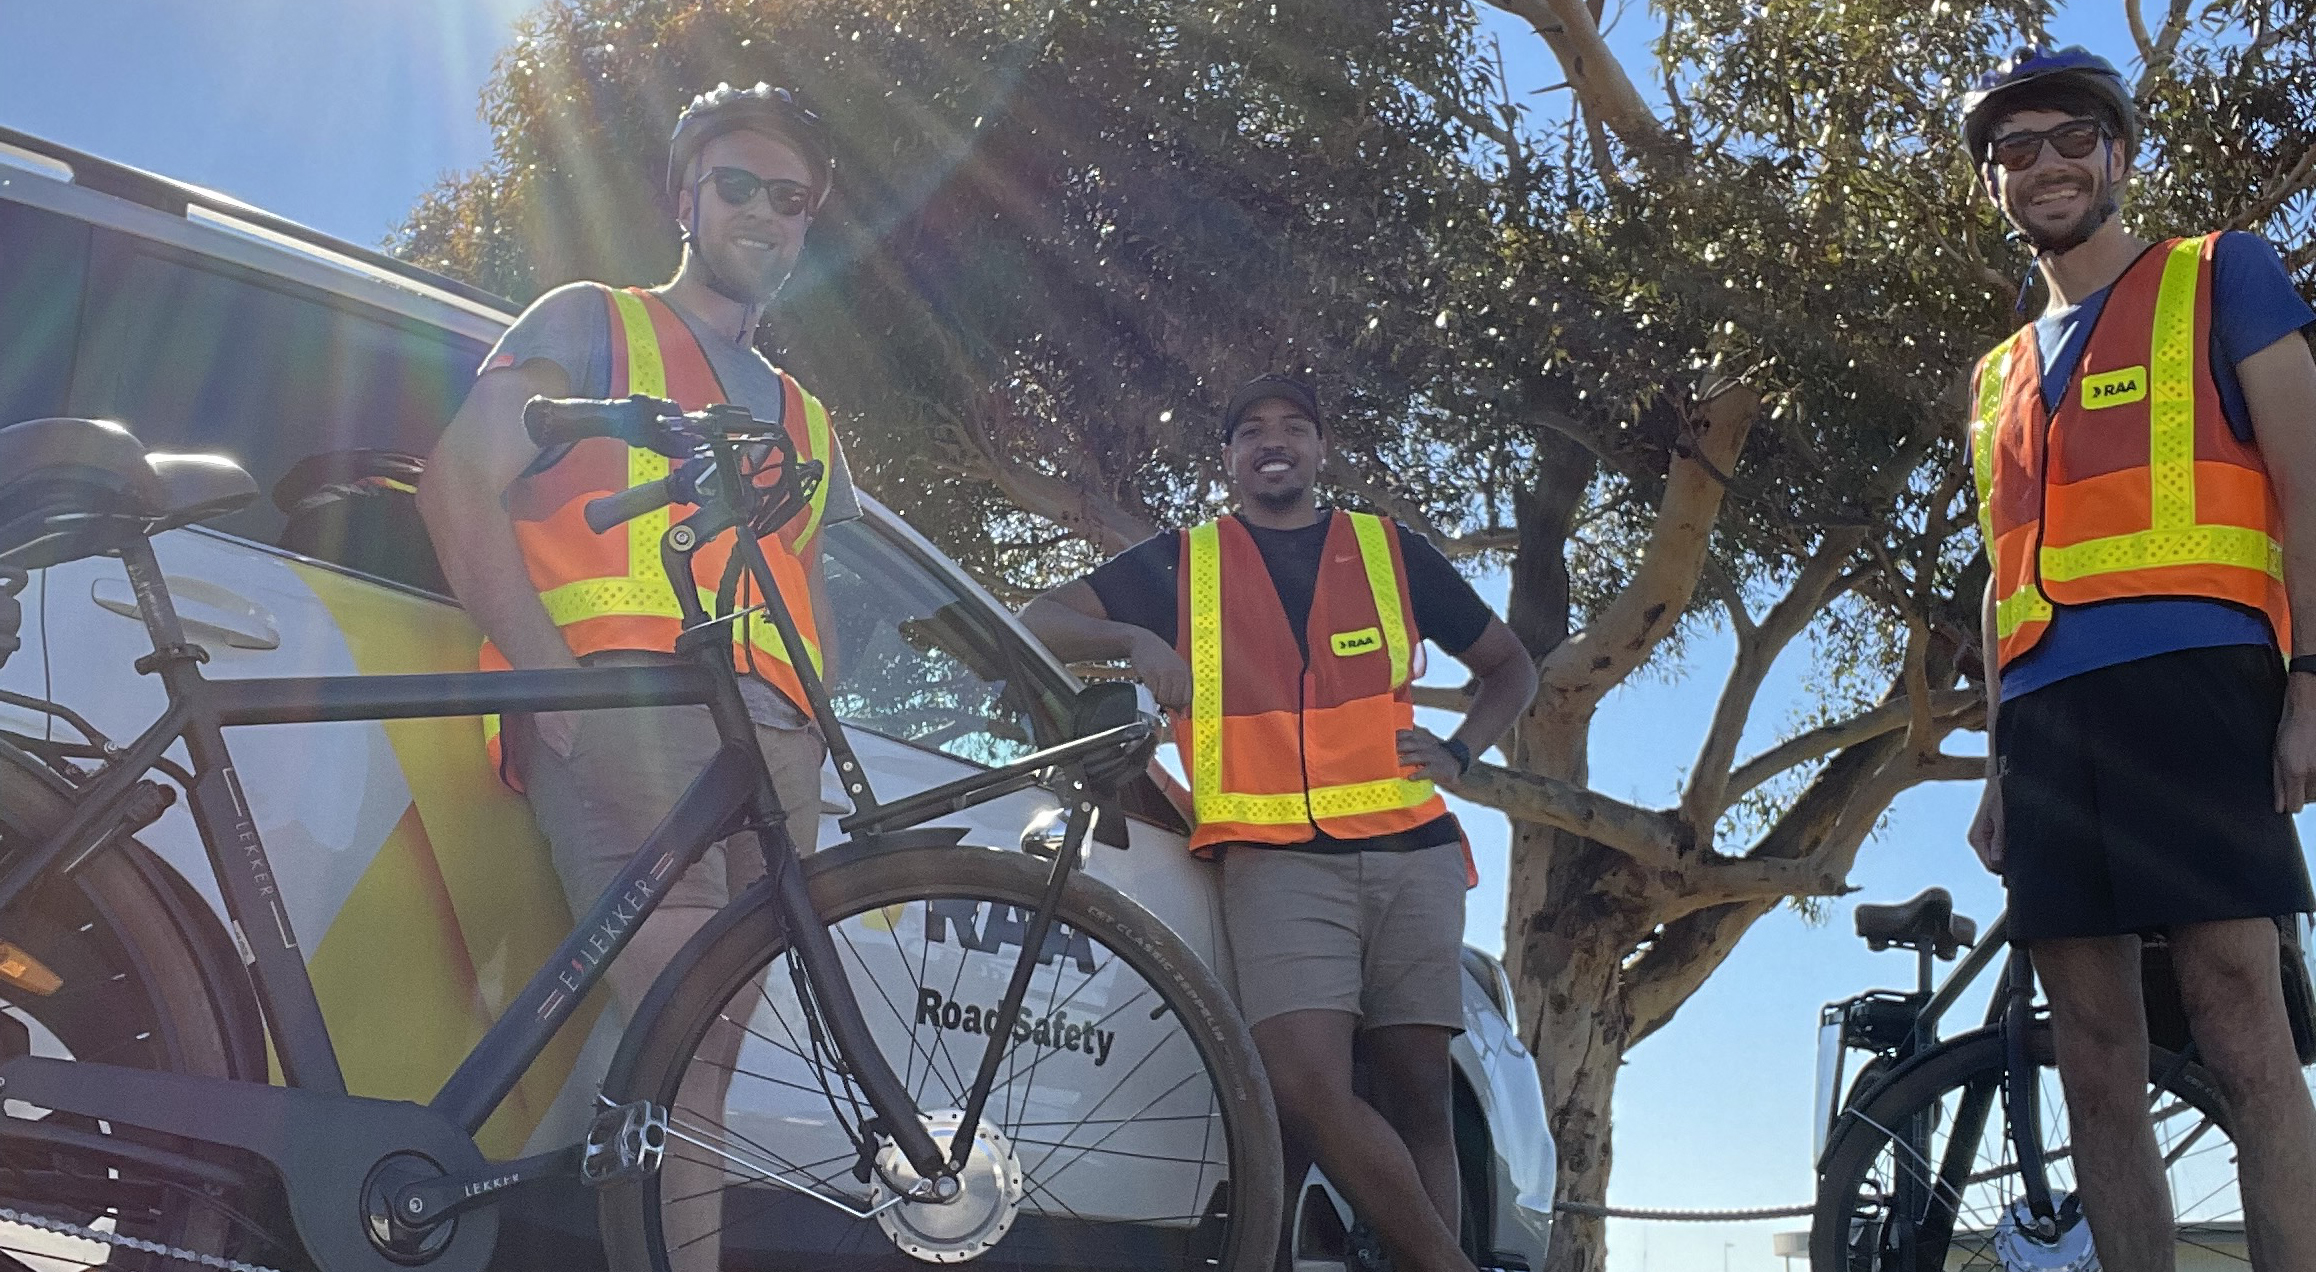 The RAA Safety and Infrastructure team on the road. Image: RAA